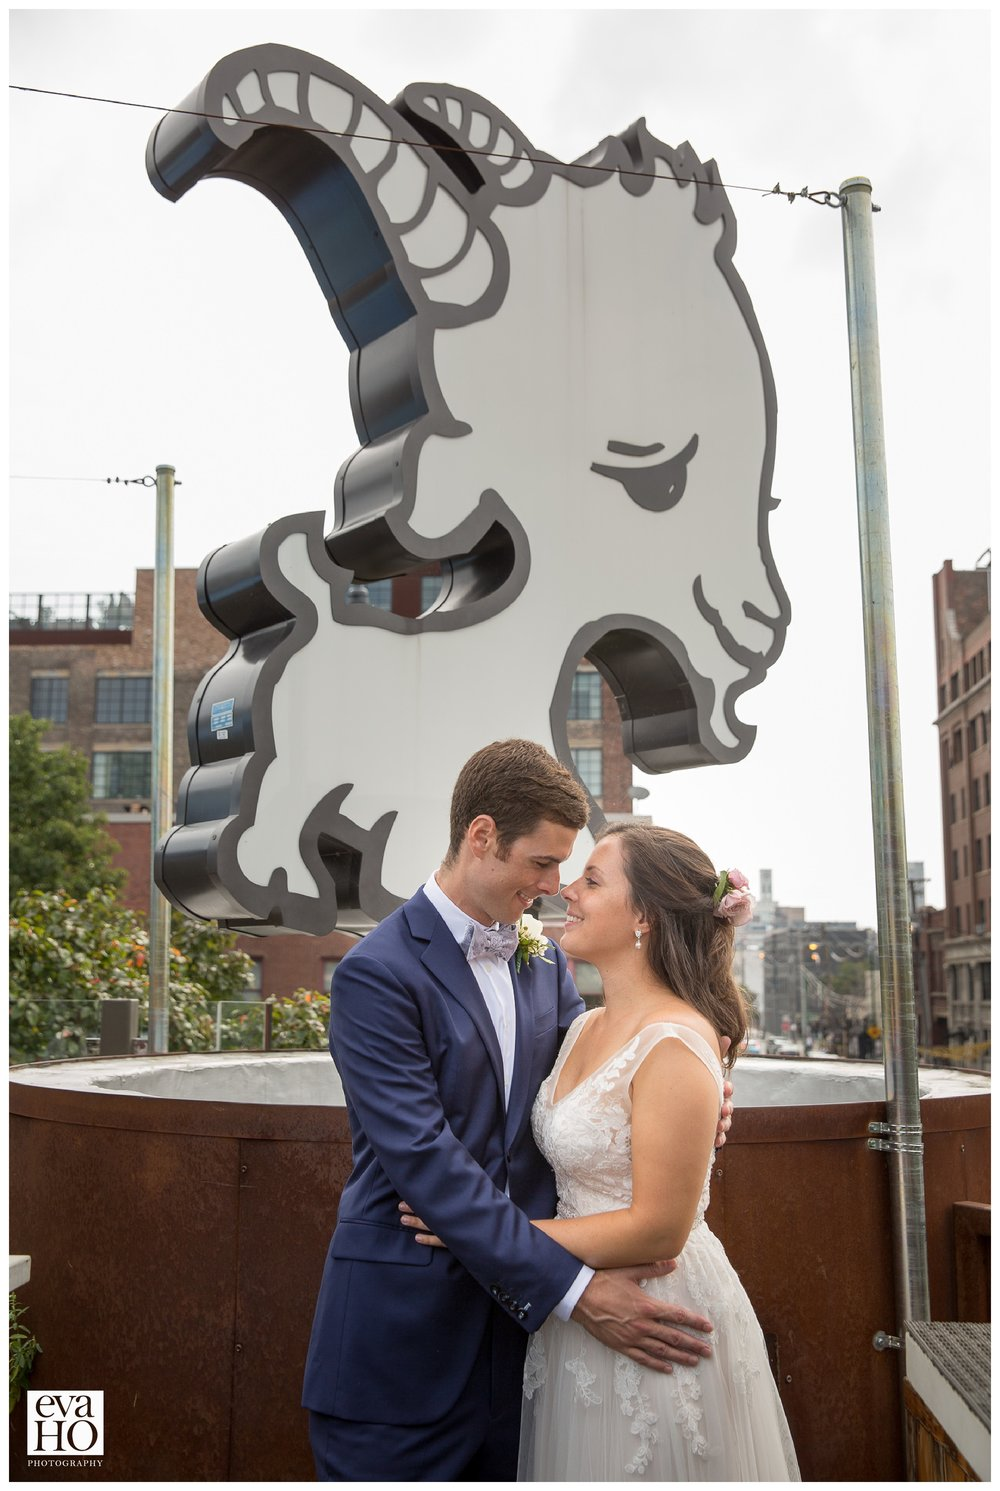 Little Goat Sign behind the Newlyweds